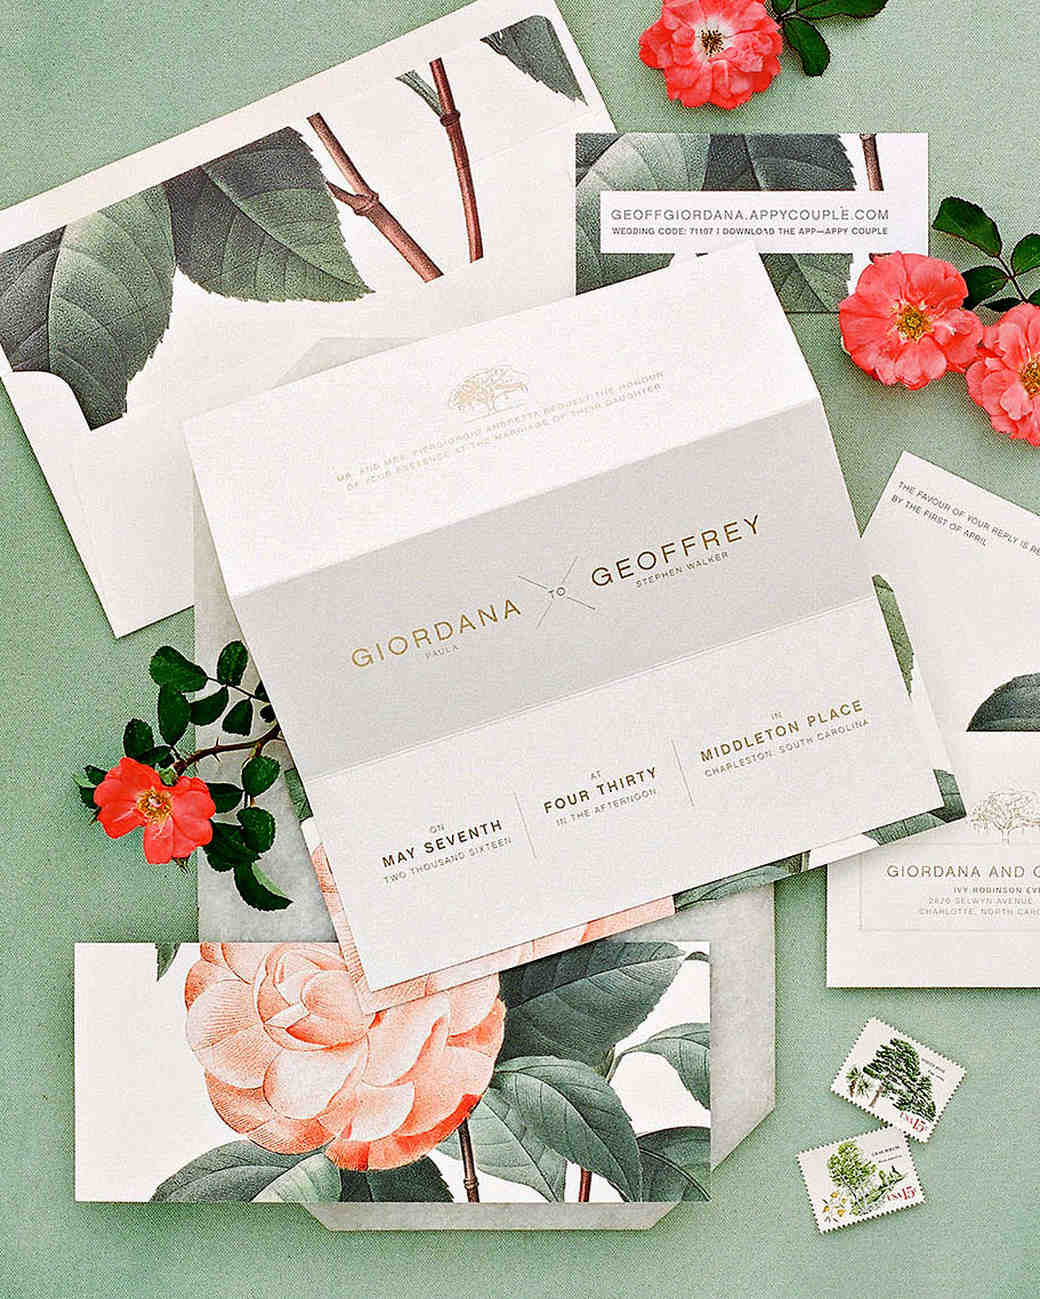 giordana and geoffrey stationery